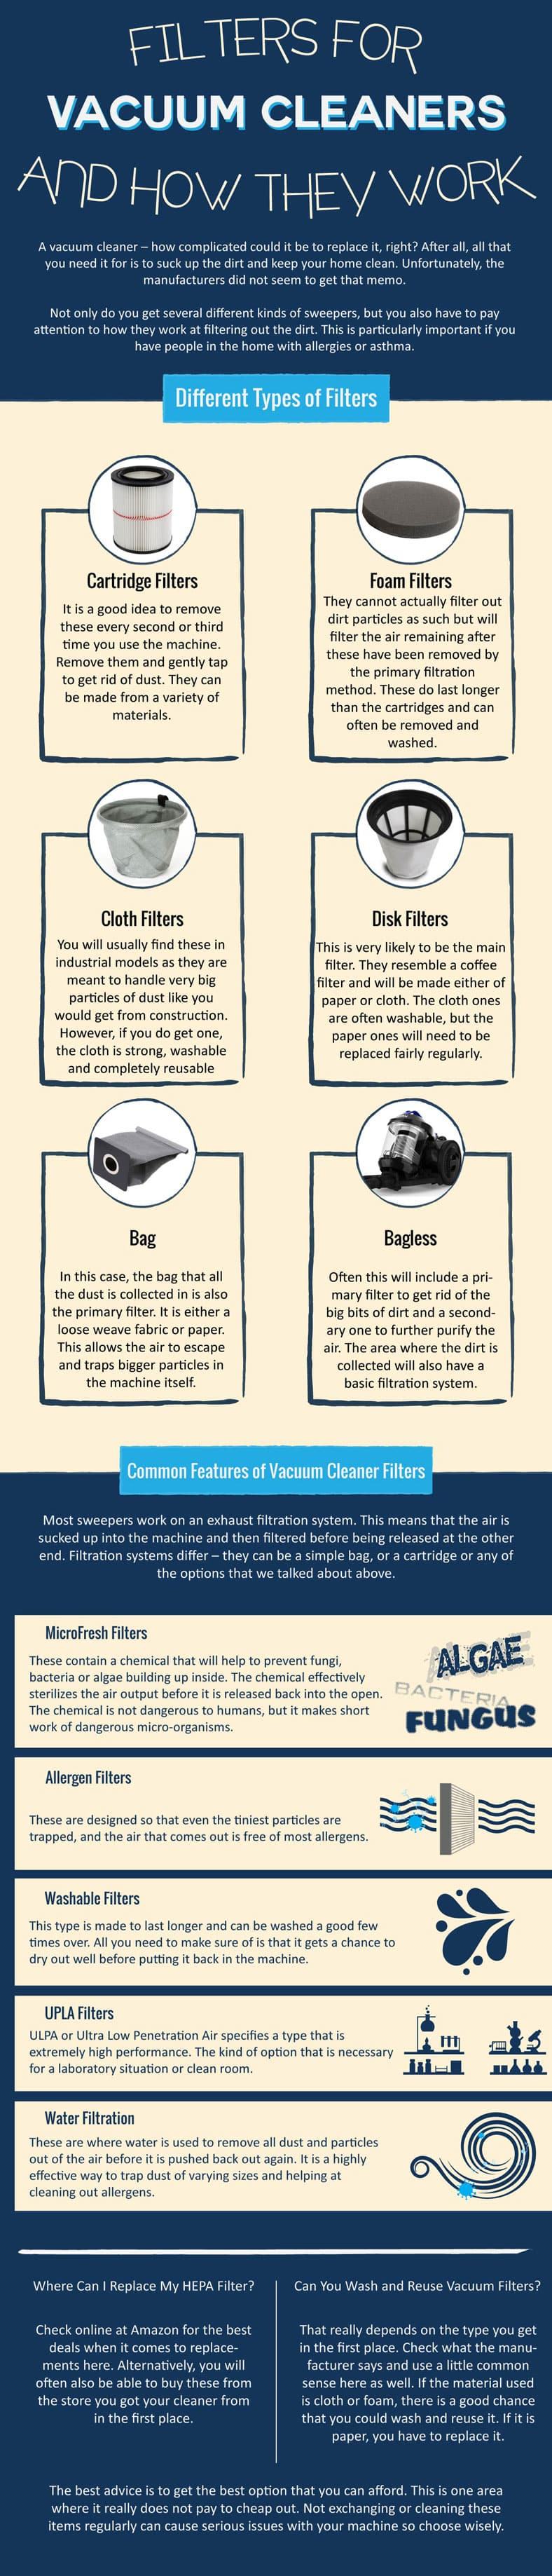 Filters for Vacuum Cleaners and How They Work Infographic